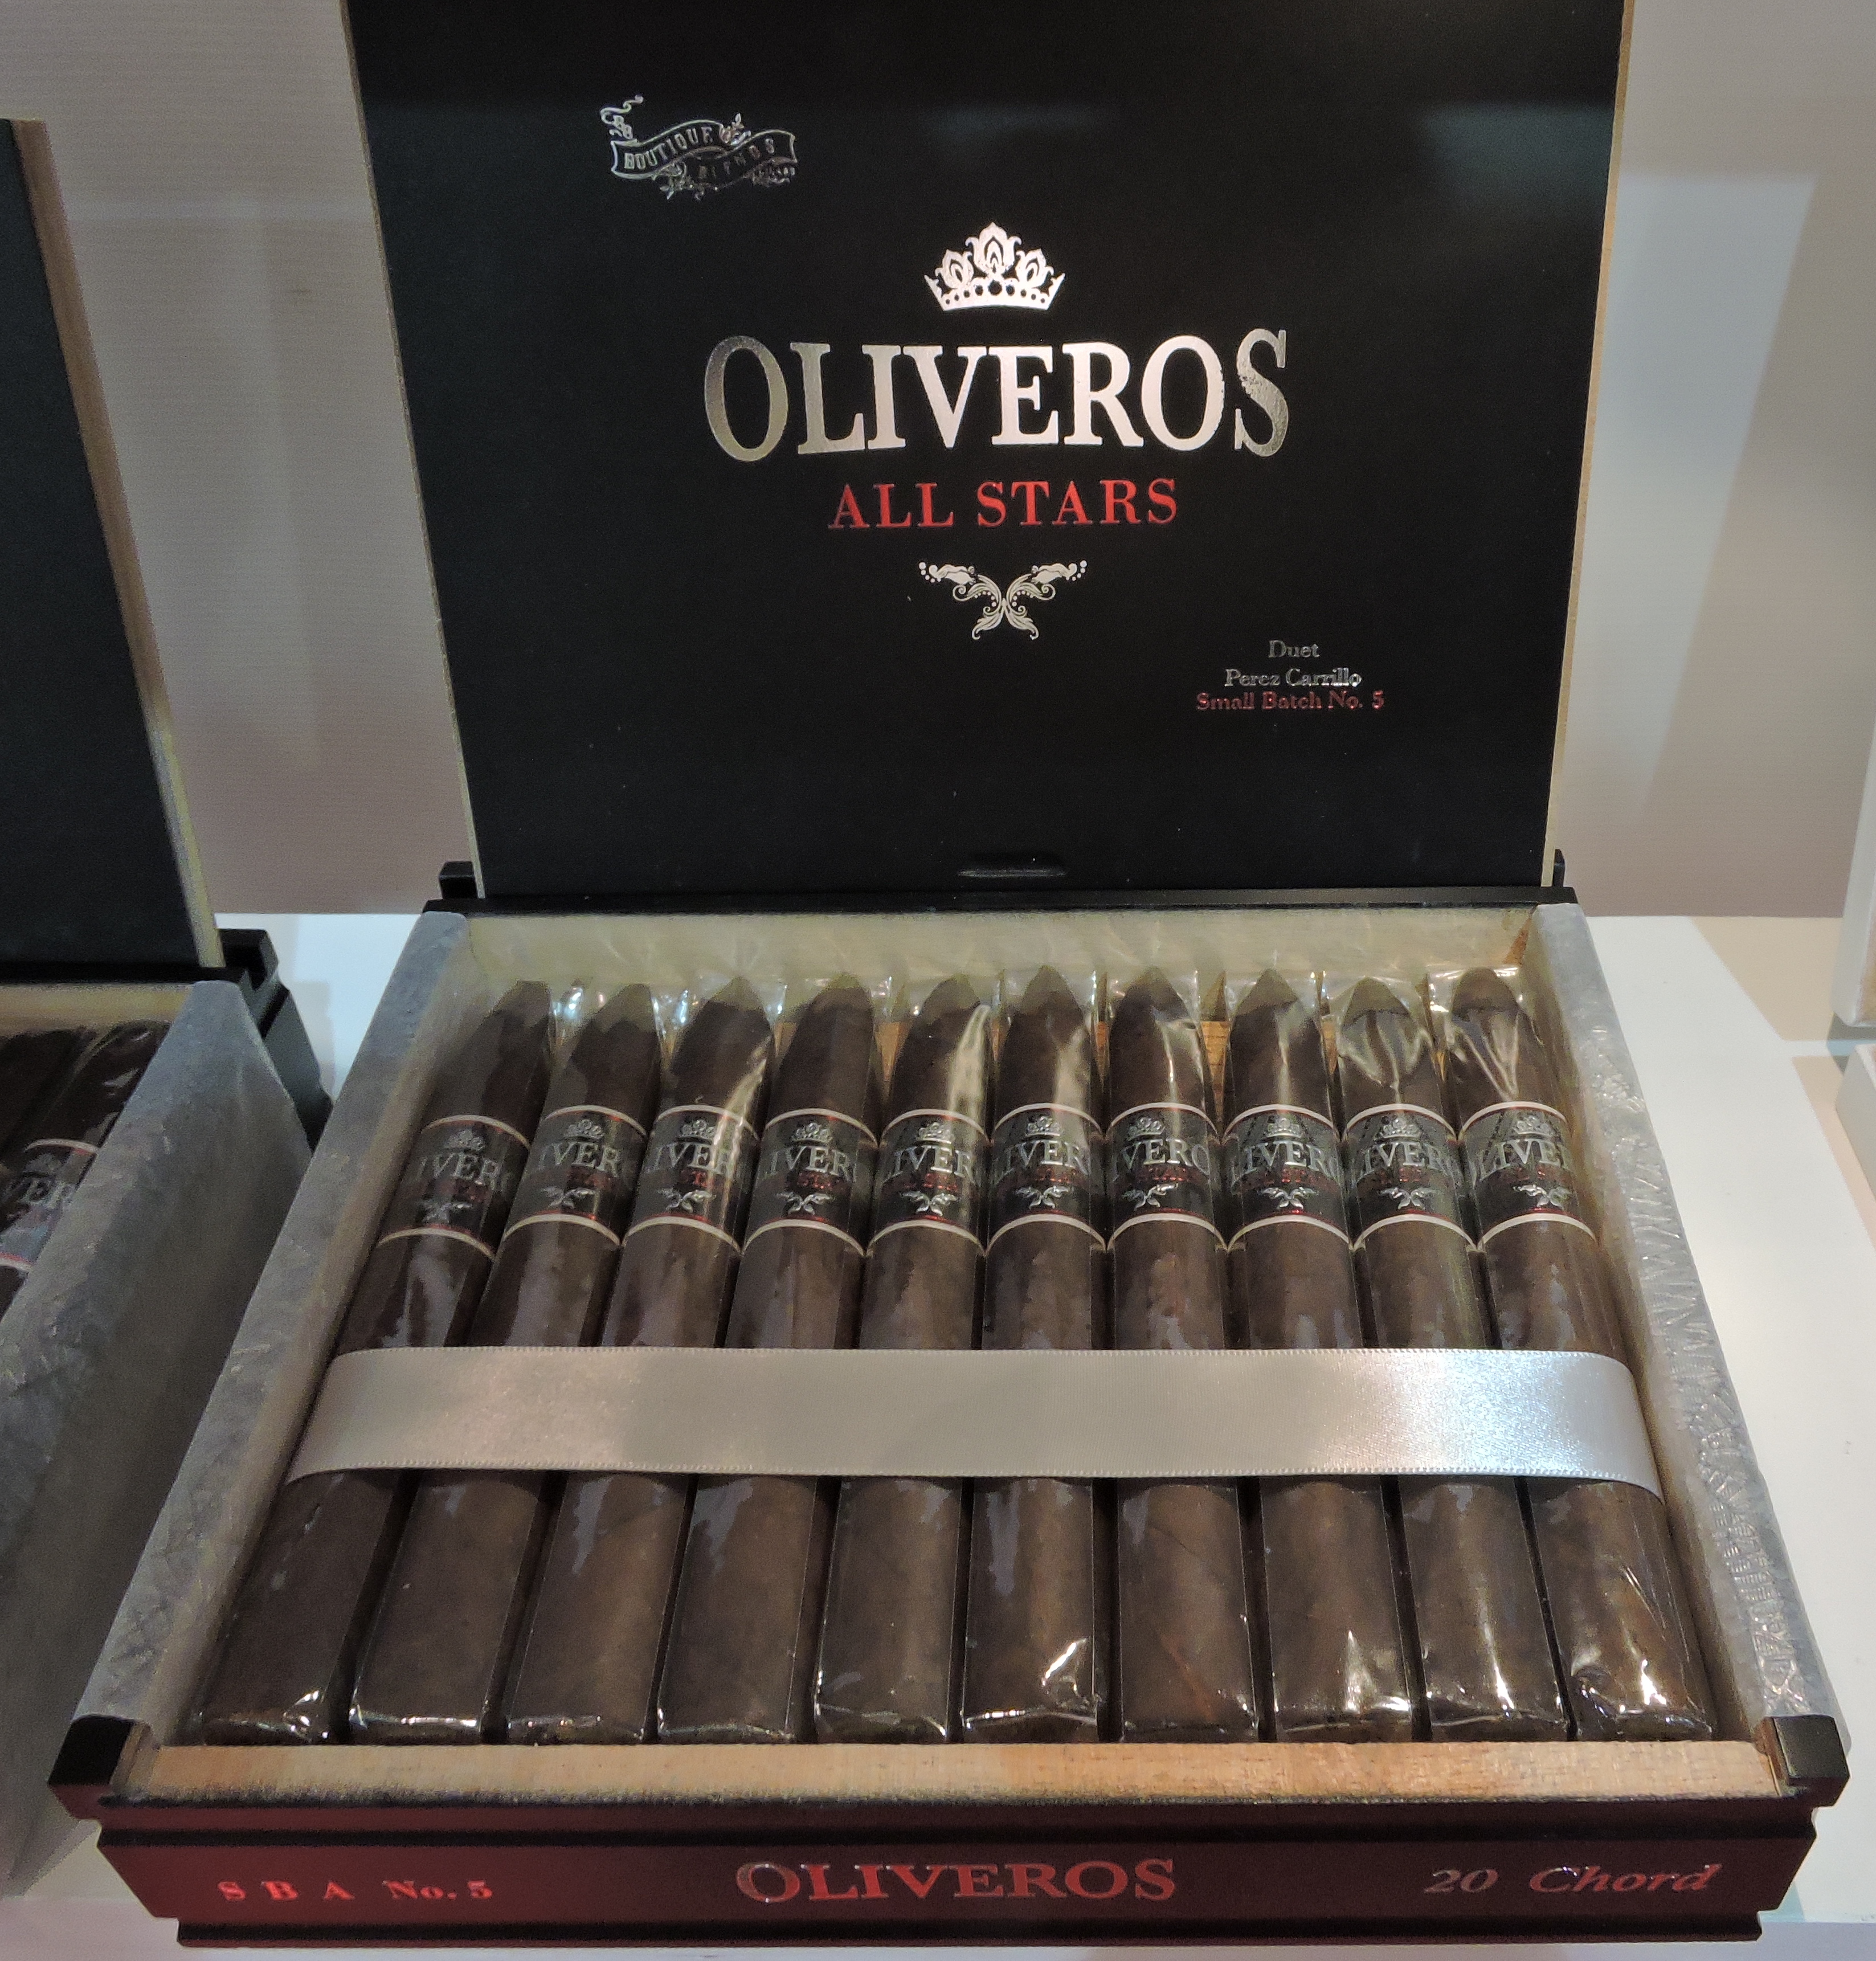 Cigar News: Boutique Blends Launches Oliveros All Stars at 2016 IPCPR Trade Show